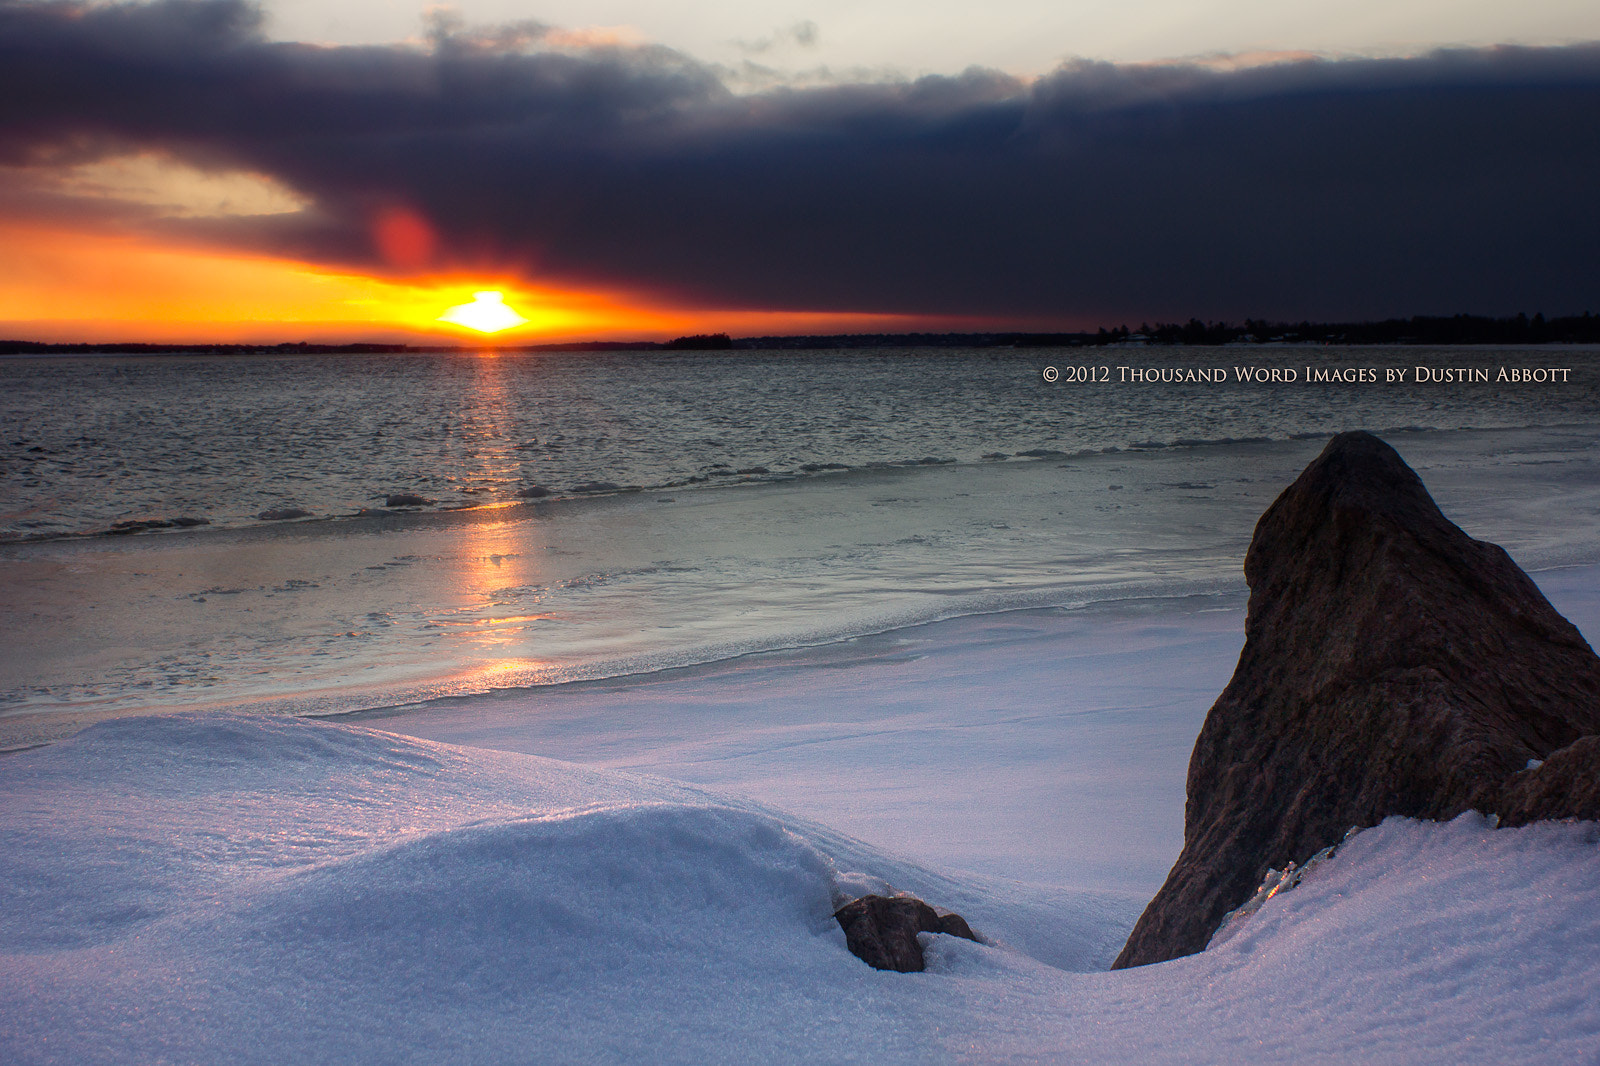 Photograph Chilly Sunrise by Dustin Abbott on 500px